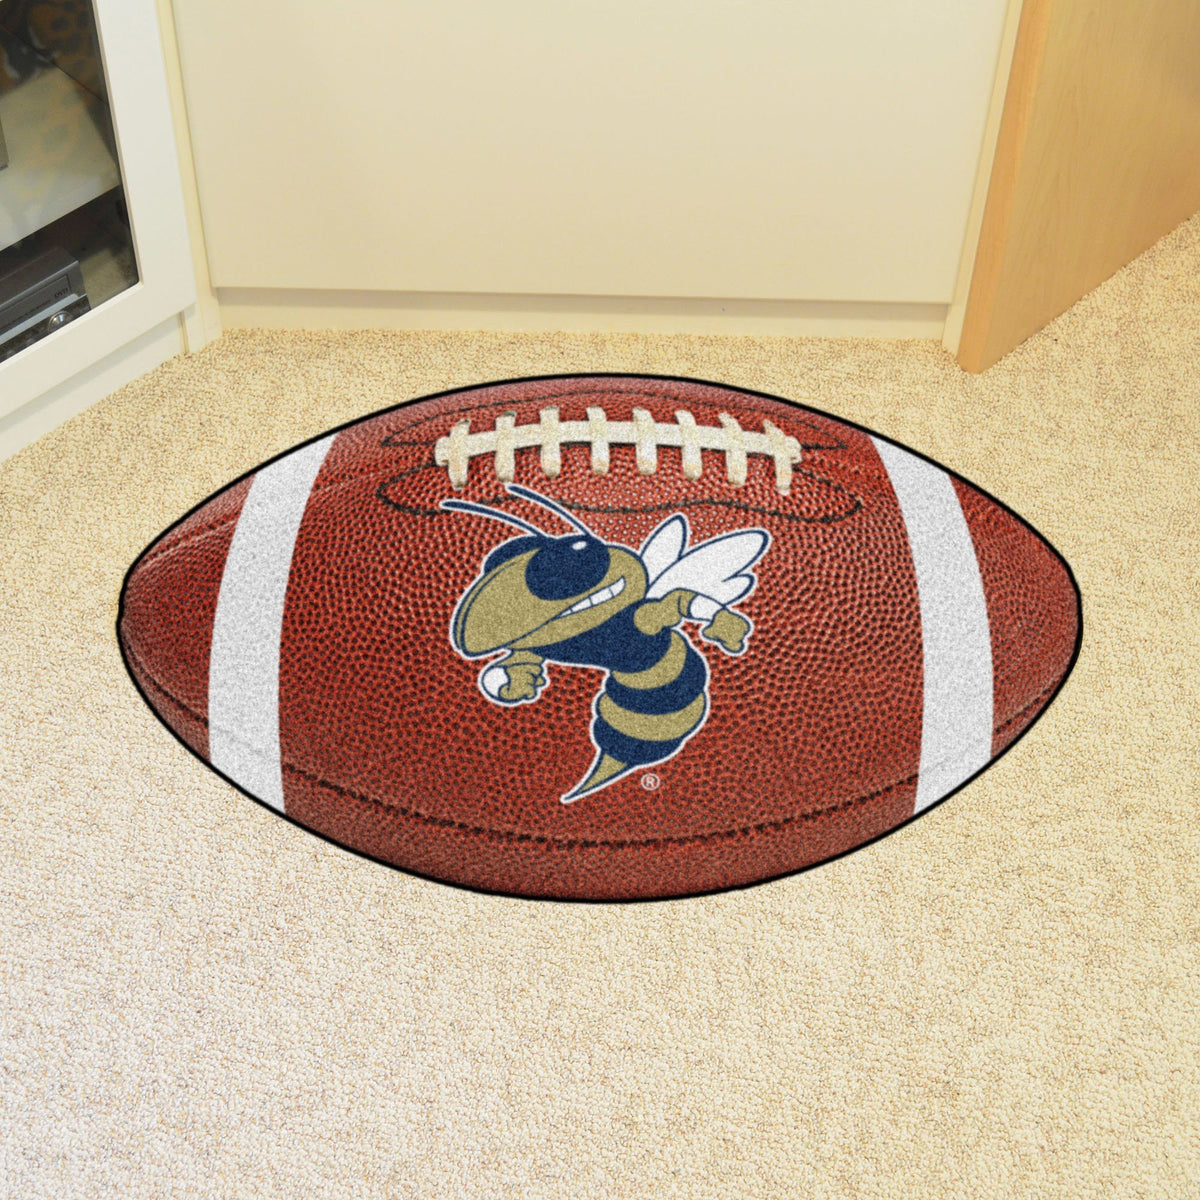 Collegiate - Football Mat: A - K Collegiate Mats, Rectangular Mats, Football Mat, Collegiate, Home Fan Mats Georgia Tech 2